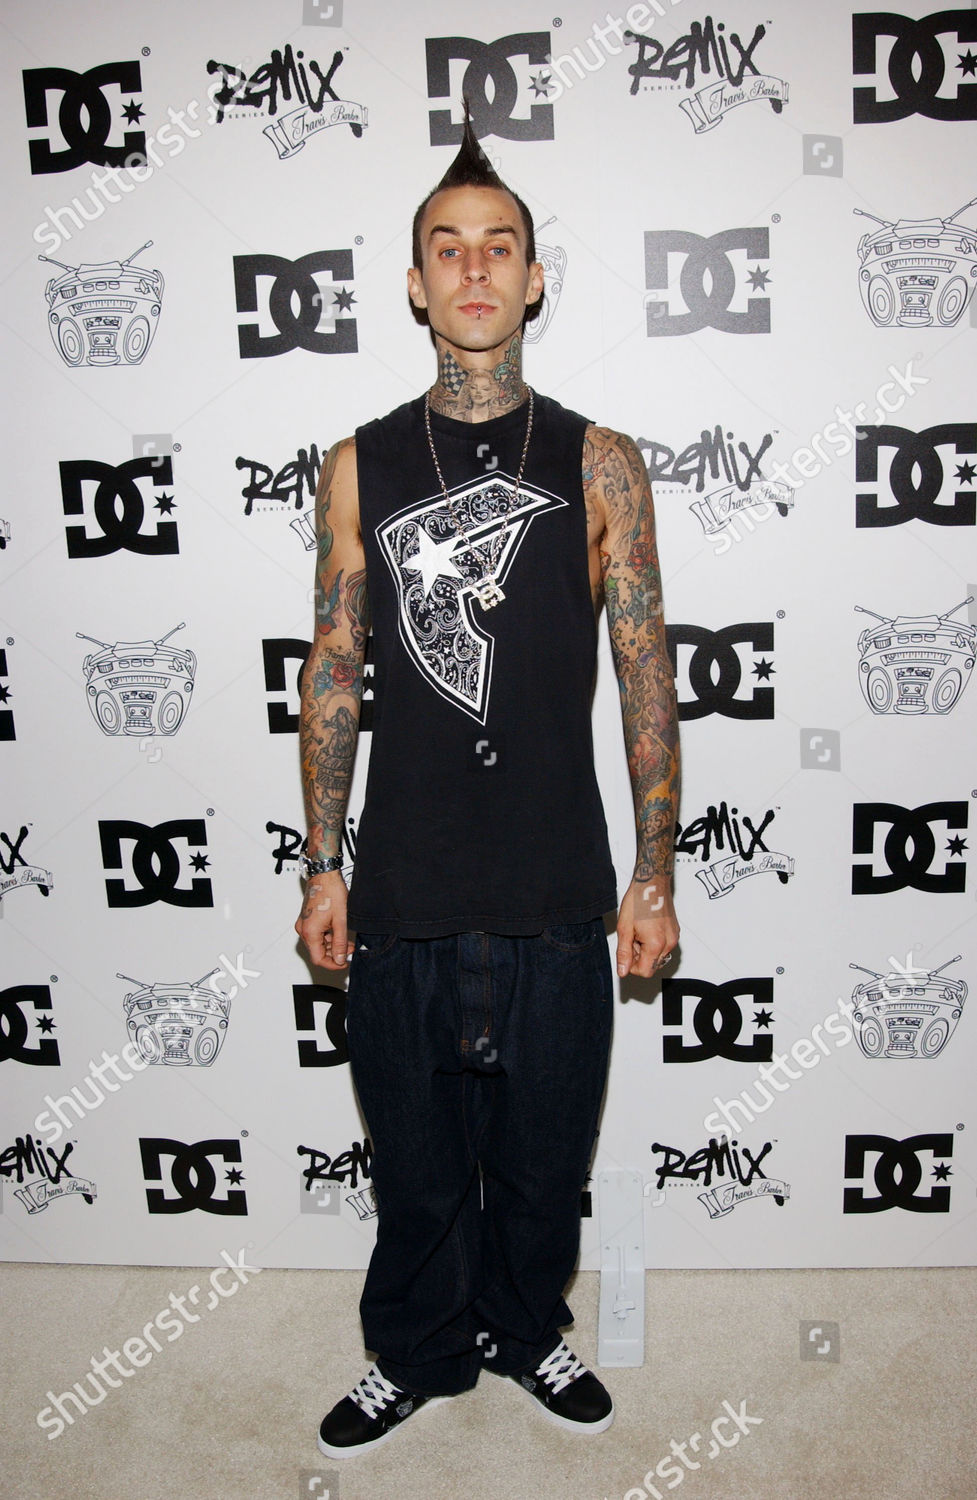 ¿Cuánto mide Travis Barker? Real height Dc-shoes-celebrate-the-new-custom-dc-shoes-remix-series-designed-by-travis-barker-hollywood-california-america-shutterstock-editorial-560383ah